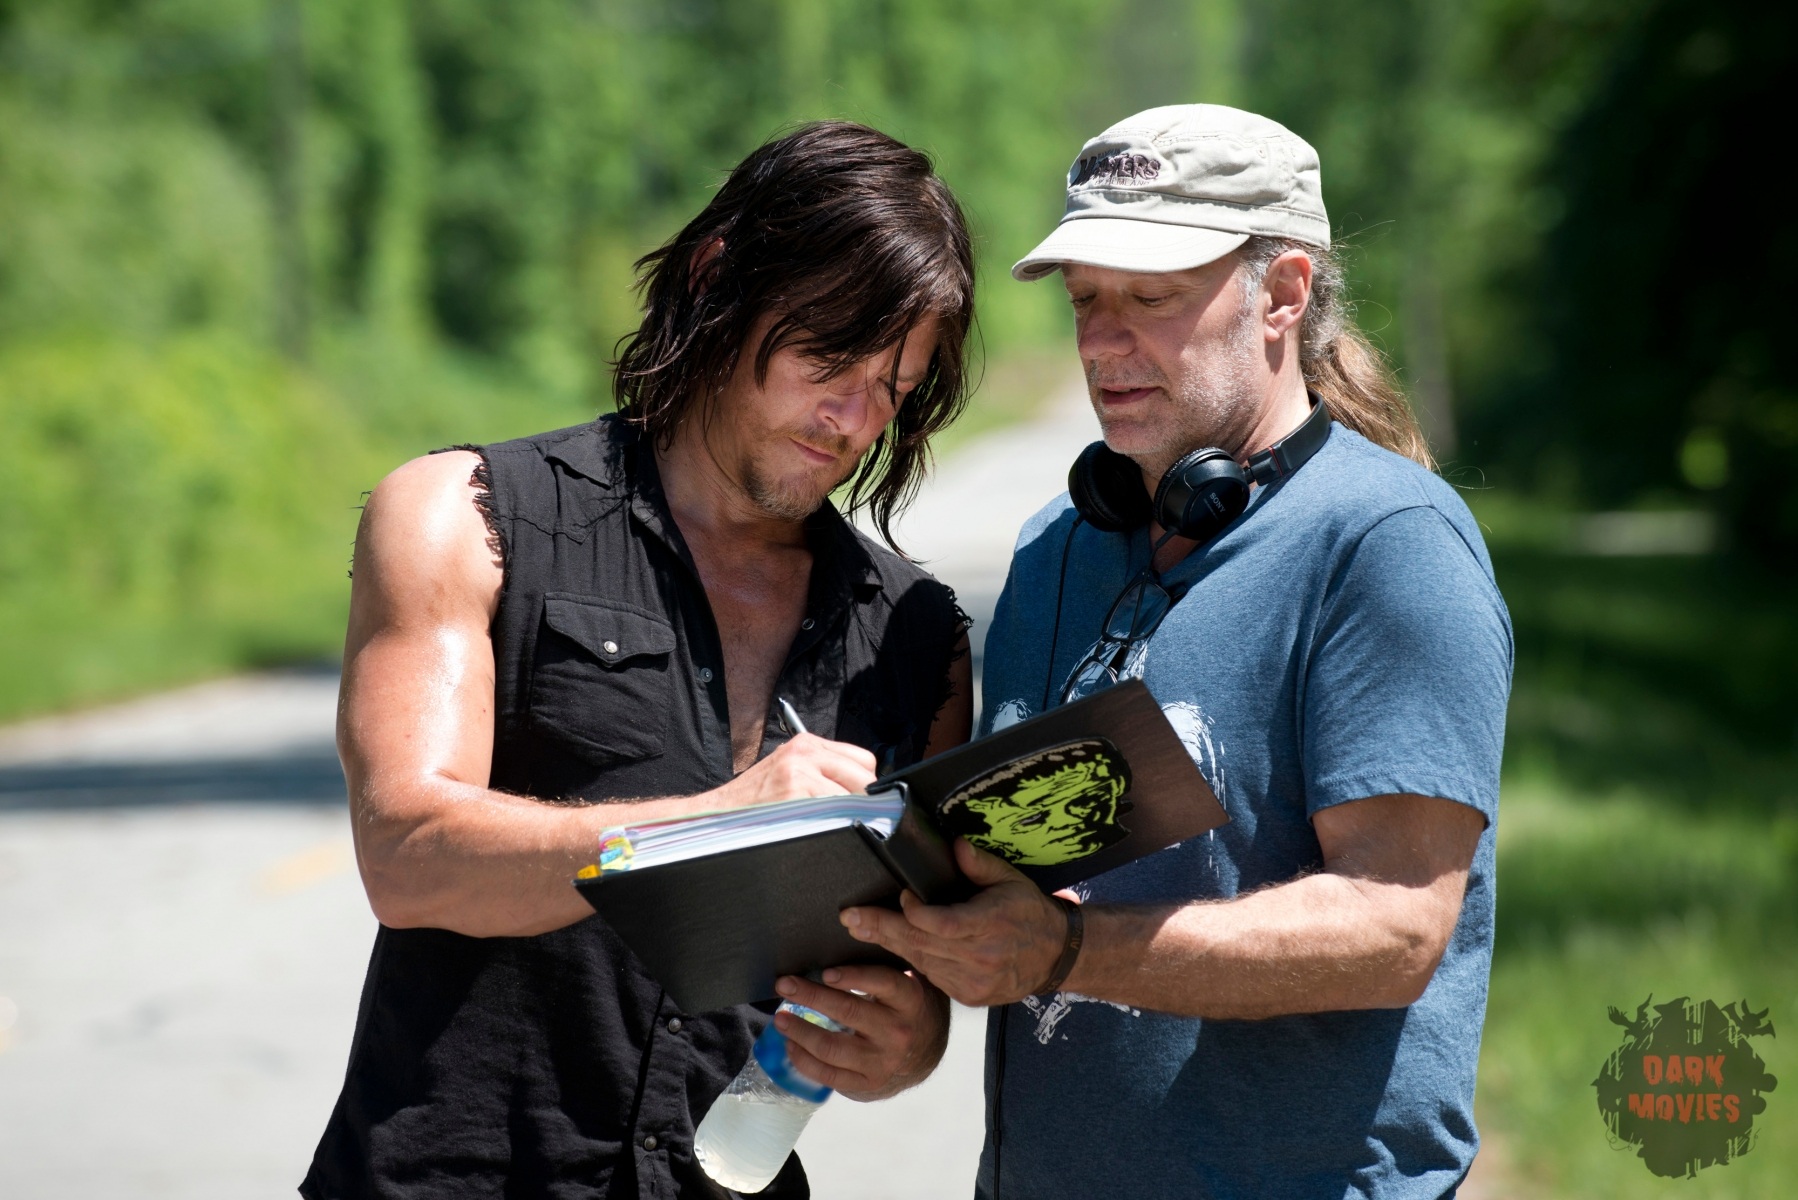 Norman Reedus as Daryl Dixon and Greg Nicotero - The Walking Dead _ Season 6, Episode 1 _ BTS - Photo Credit: Gene Page/AMC